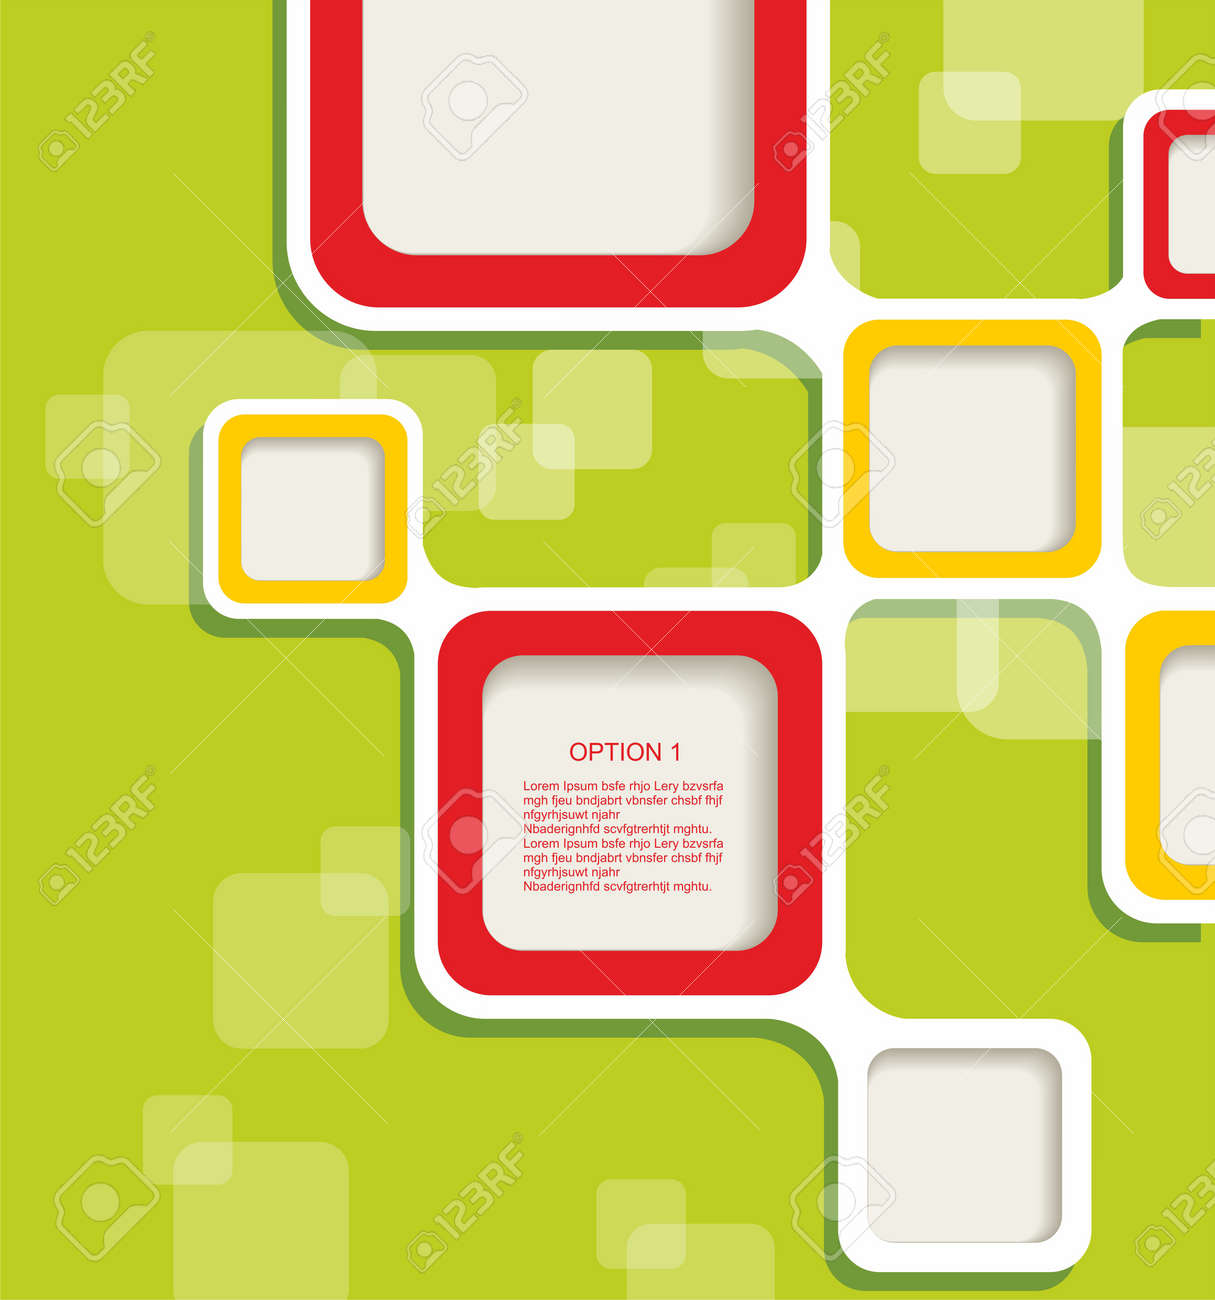 Blank square background for Your Text - Realistic 3D Background Stock Vector - 14934159